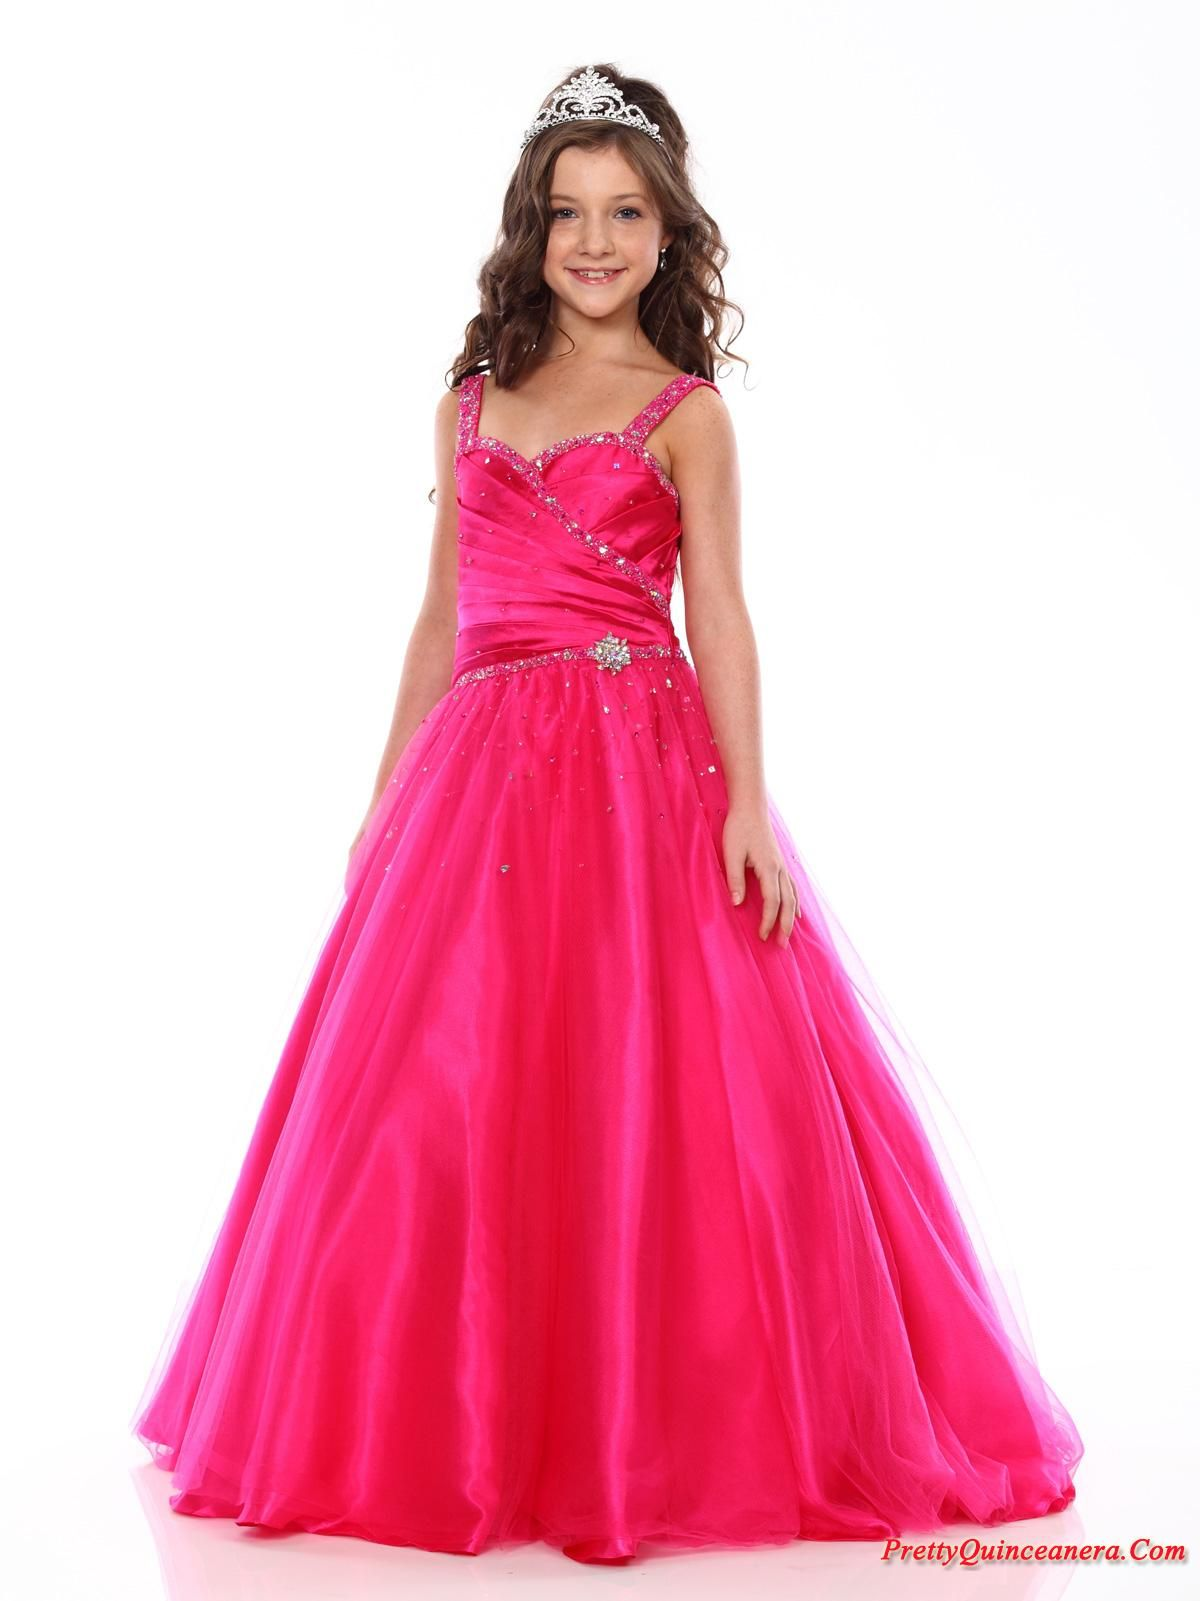 ball gown dresses for girls | Beautiful ball gown strap floor length ...